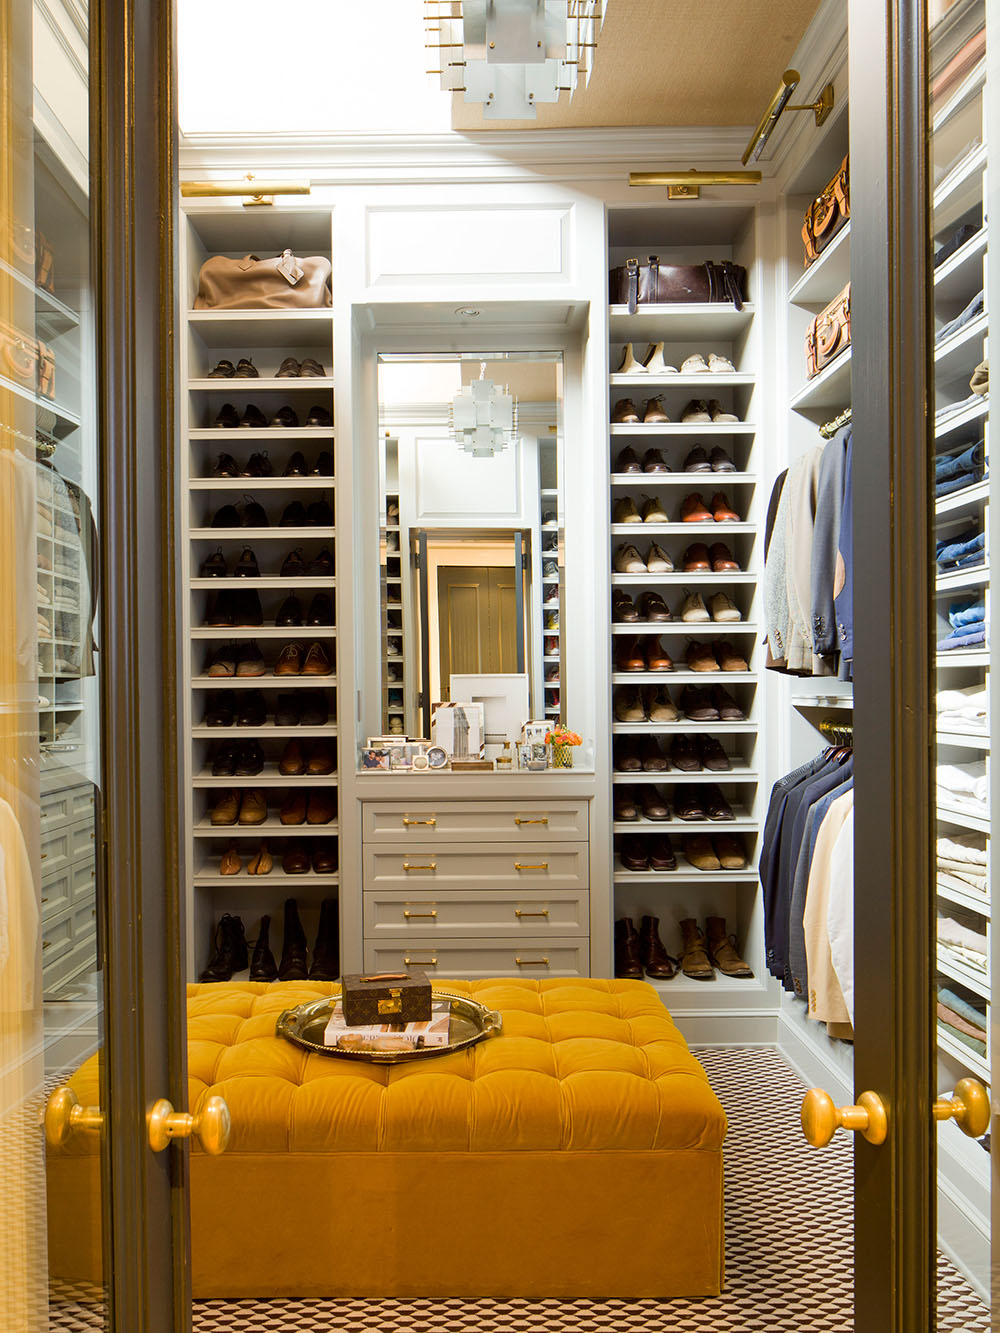 4808e__Walk-in-Closet-for-Men-Masculine-closet-design-3.jpg